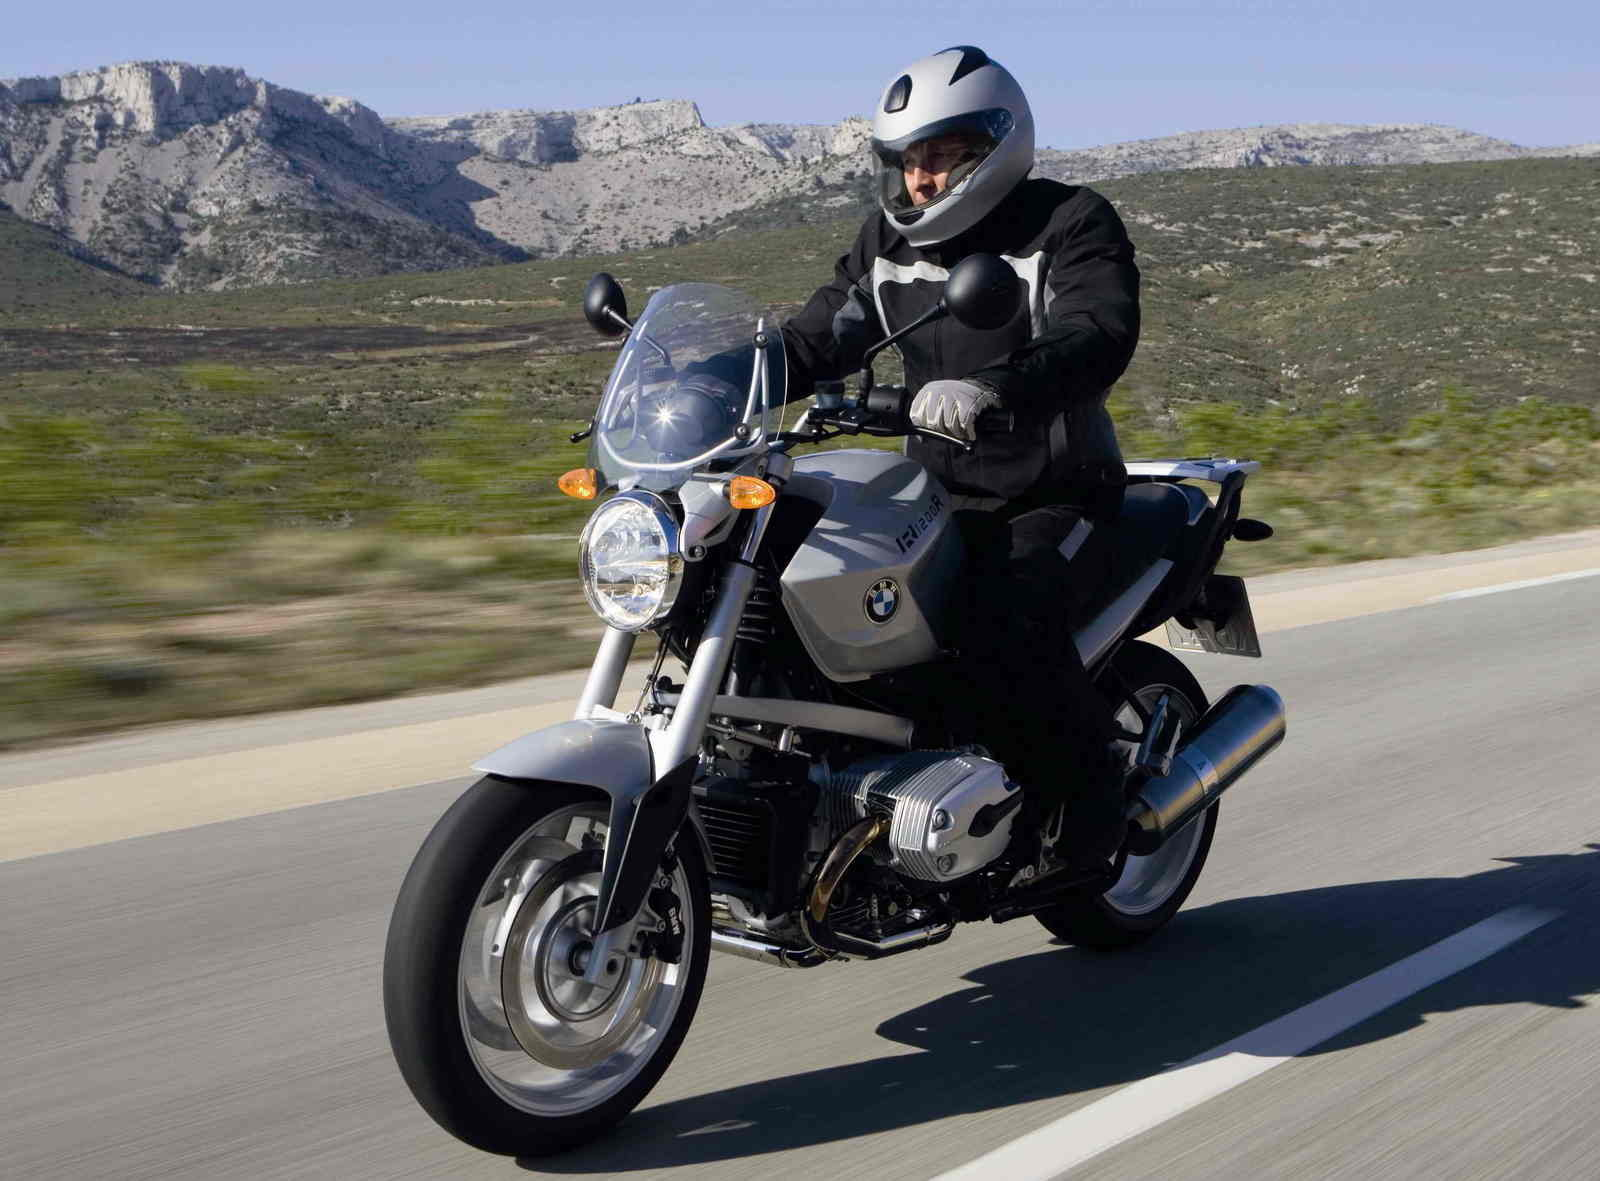 2007 bmw r 1200 r picture 115623 motorcycle review top speed. Black Bedroom Furniture Sets. Home Design Ideas